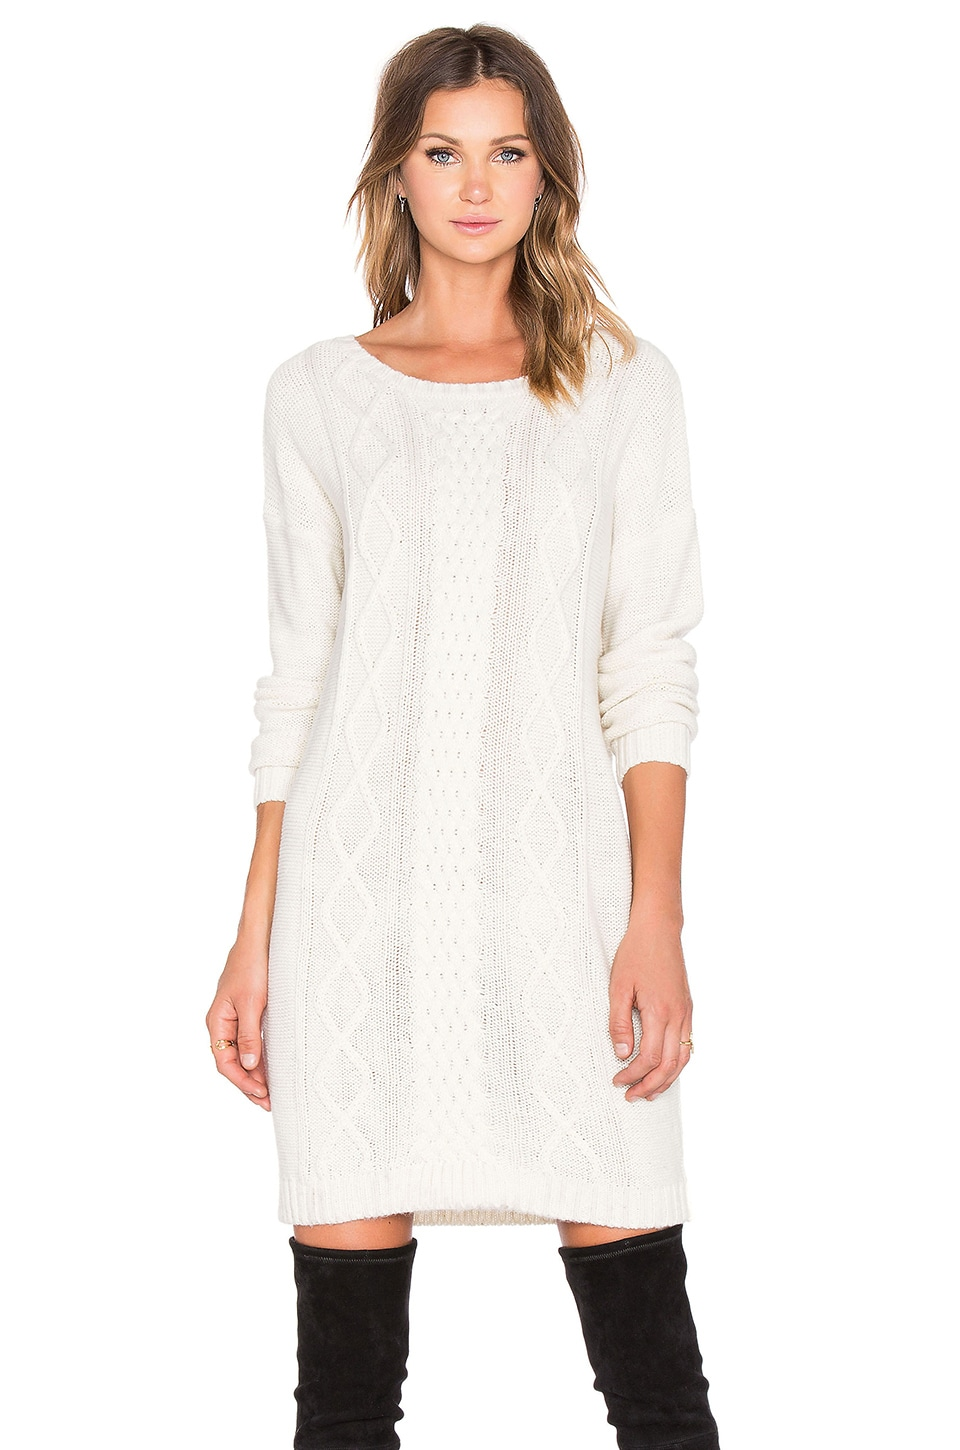 BB Dakota Scout Sweater Dress in Whisper White